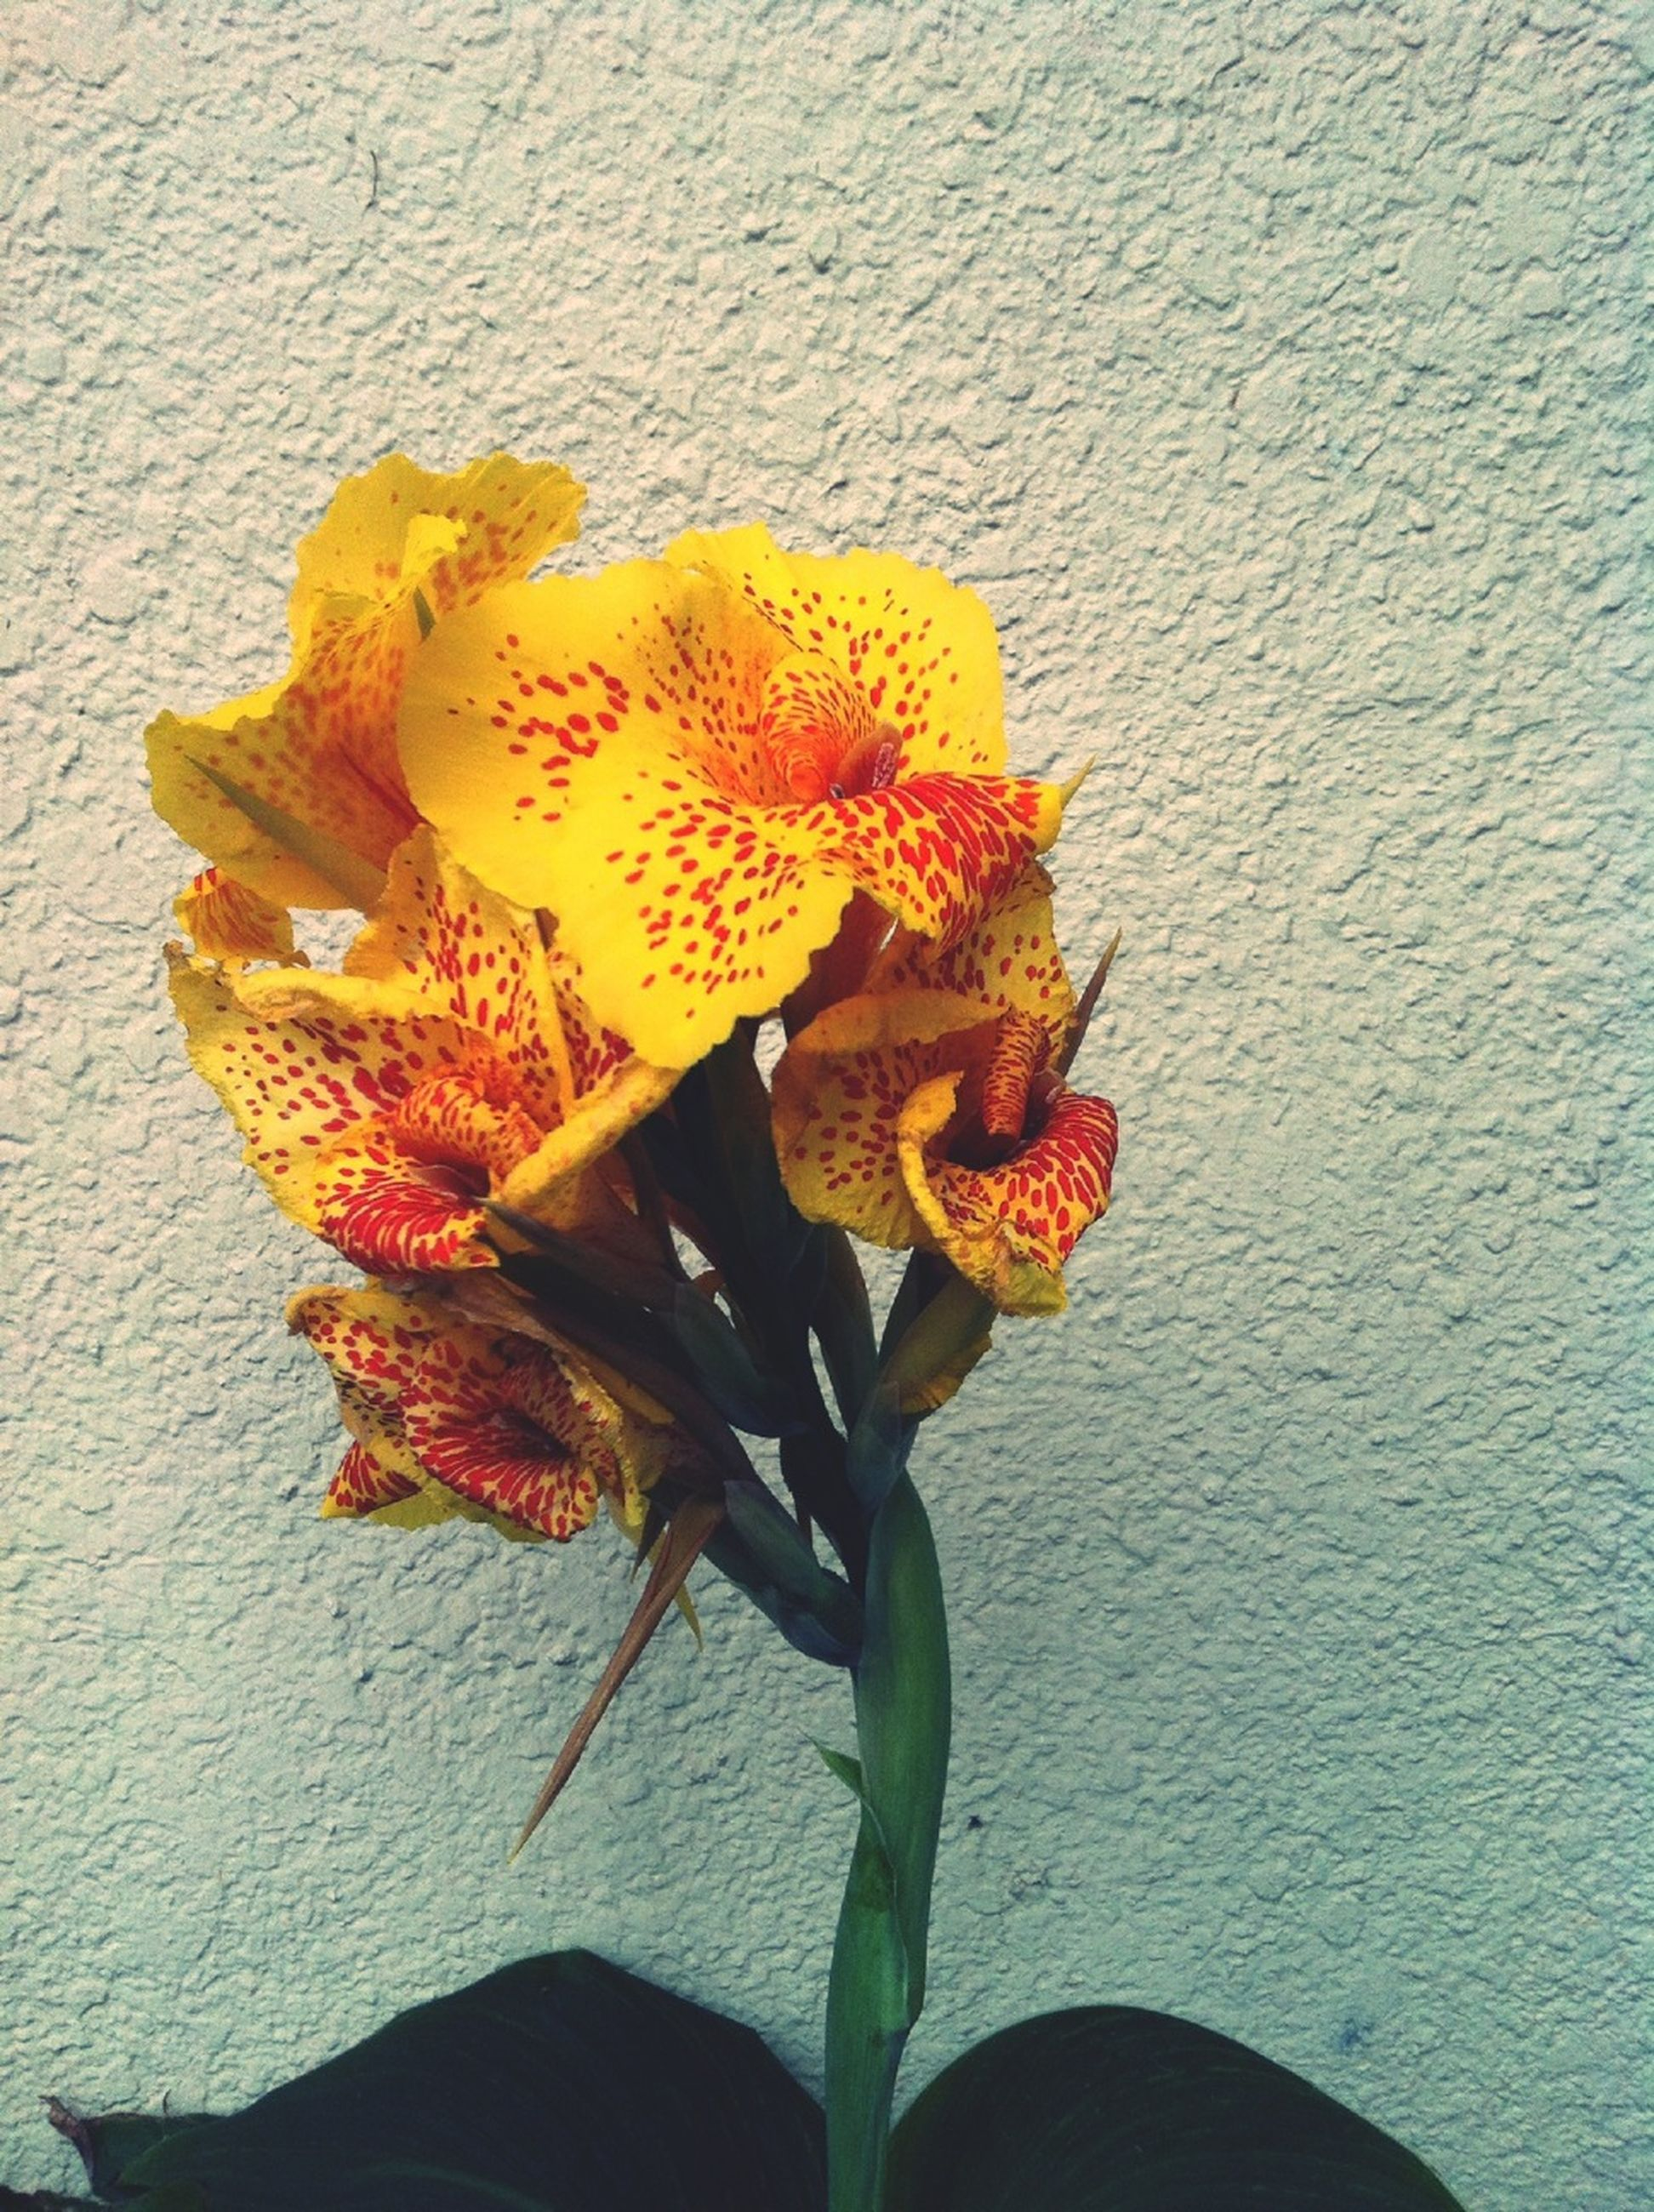 flower, petal, yellow, freshness, fragility, flower head, leaf, wall - building feature, close-up, plant, growth, nature, high angle view, stem, beauty in nature, blooming, single flower, dry, wall, botany